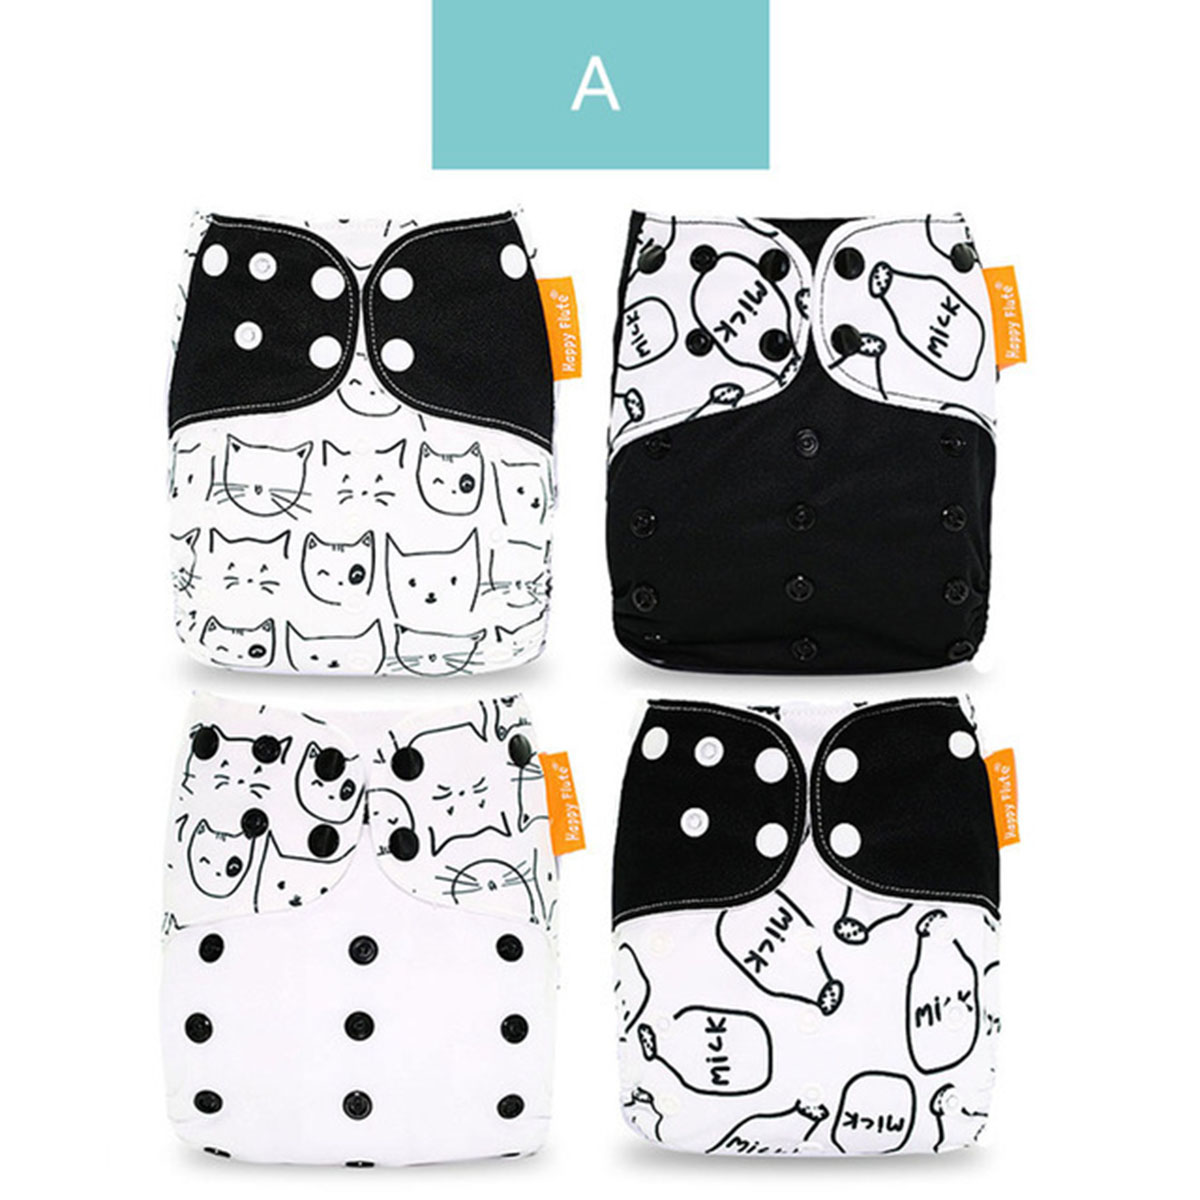 Puseky 4pcs/set Washable Cloth Diaper Cover Adjustable Nappy Reusable Cloth Diapers Cloth Nappy Fit 3-15kg Baby